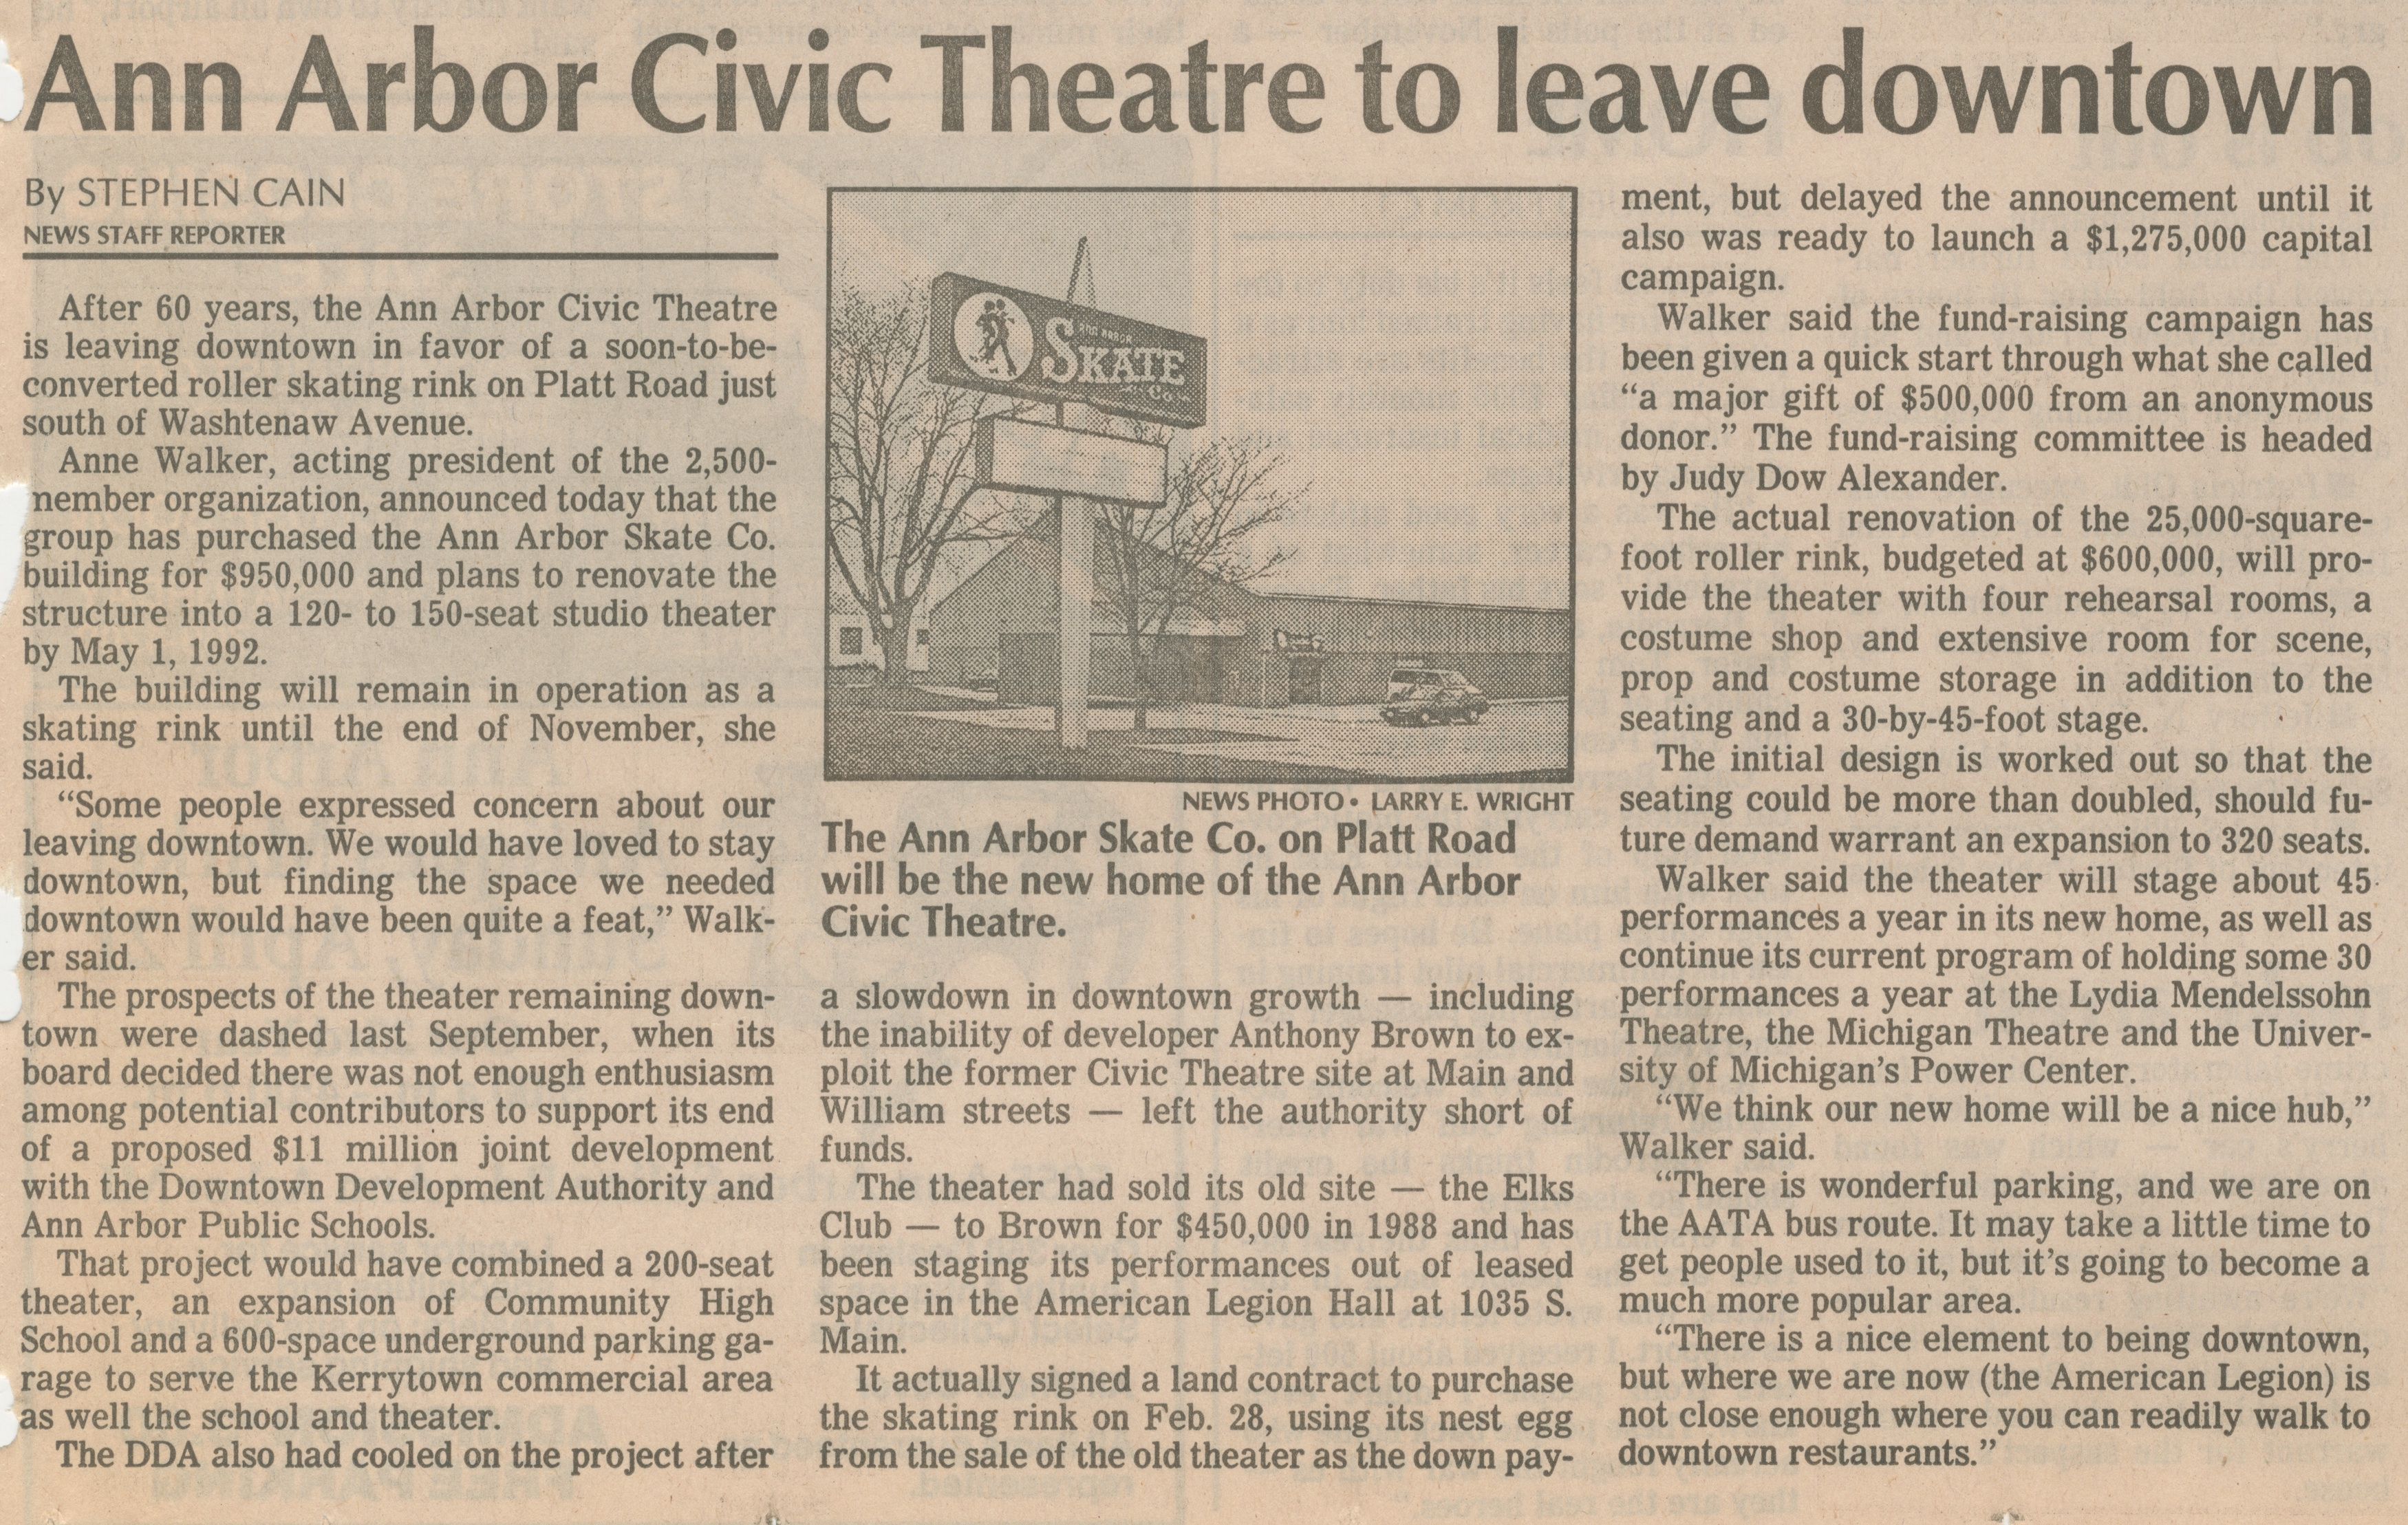 Ann Arbor Civic Theatre To Leave Downtown image